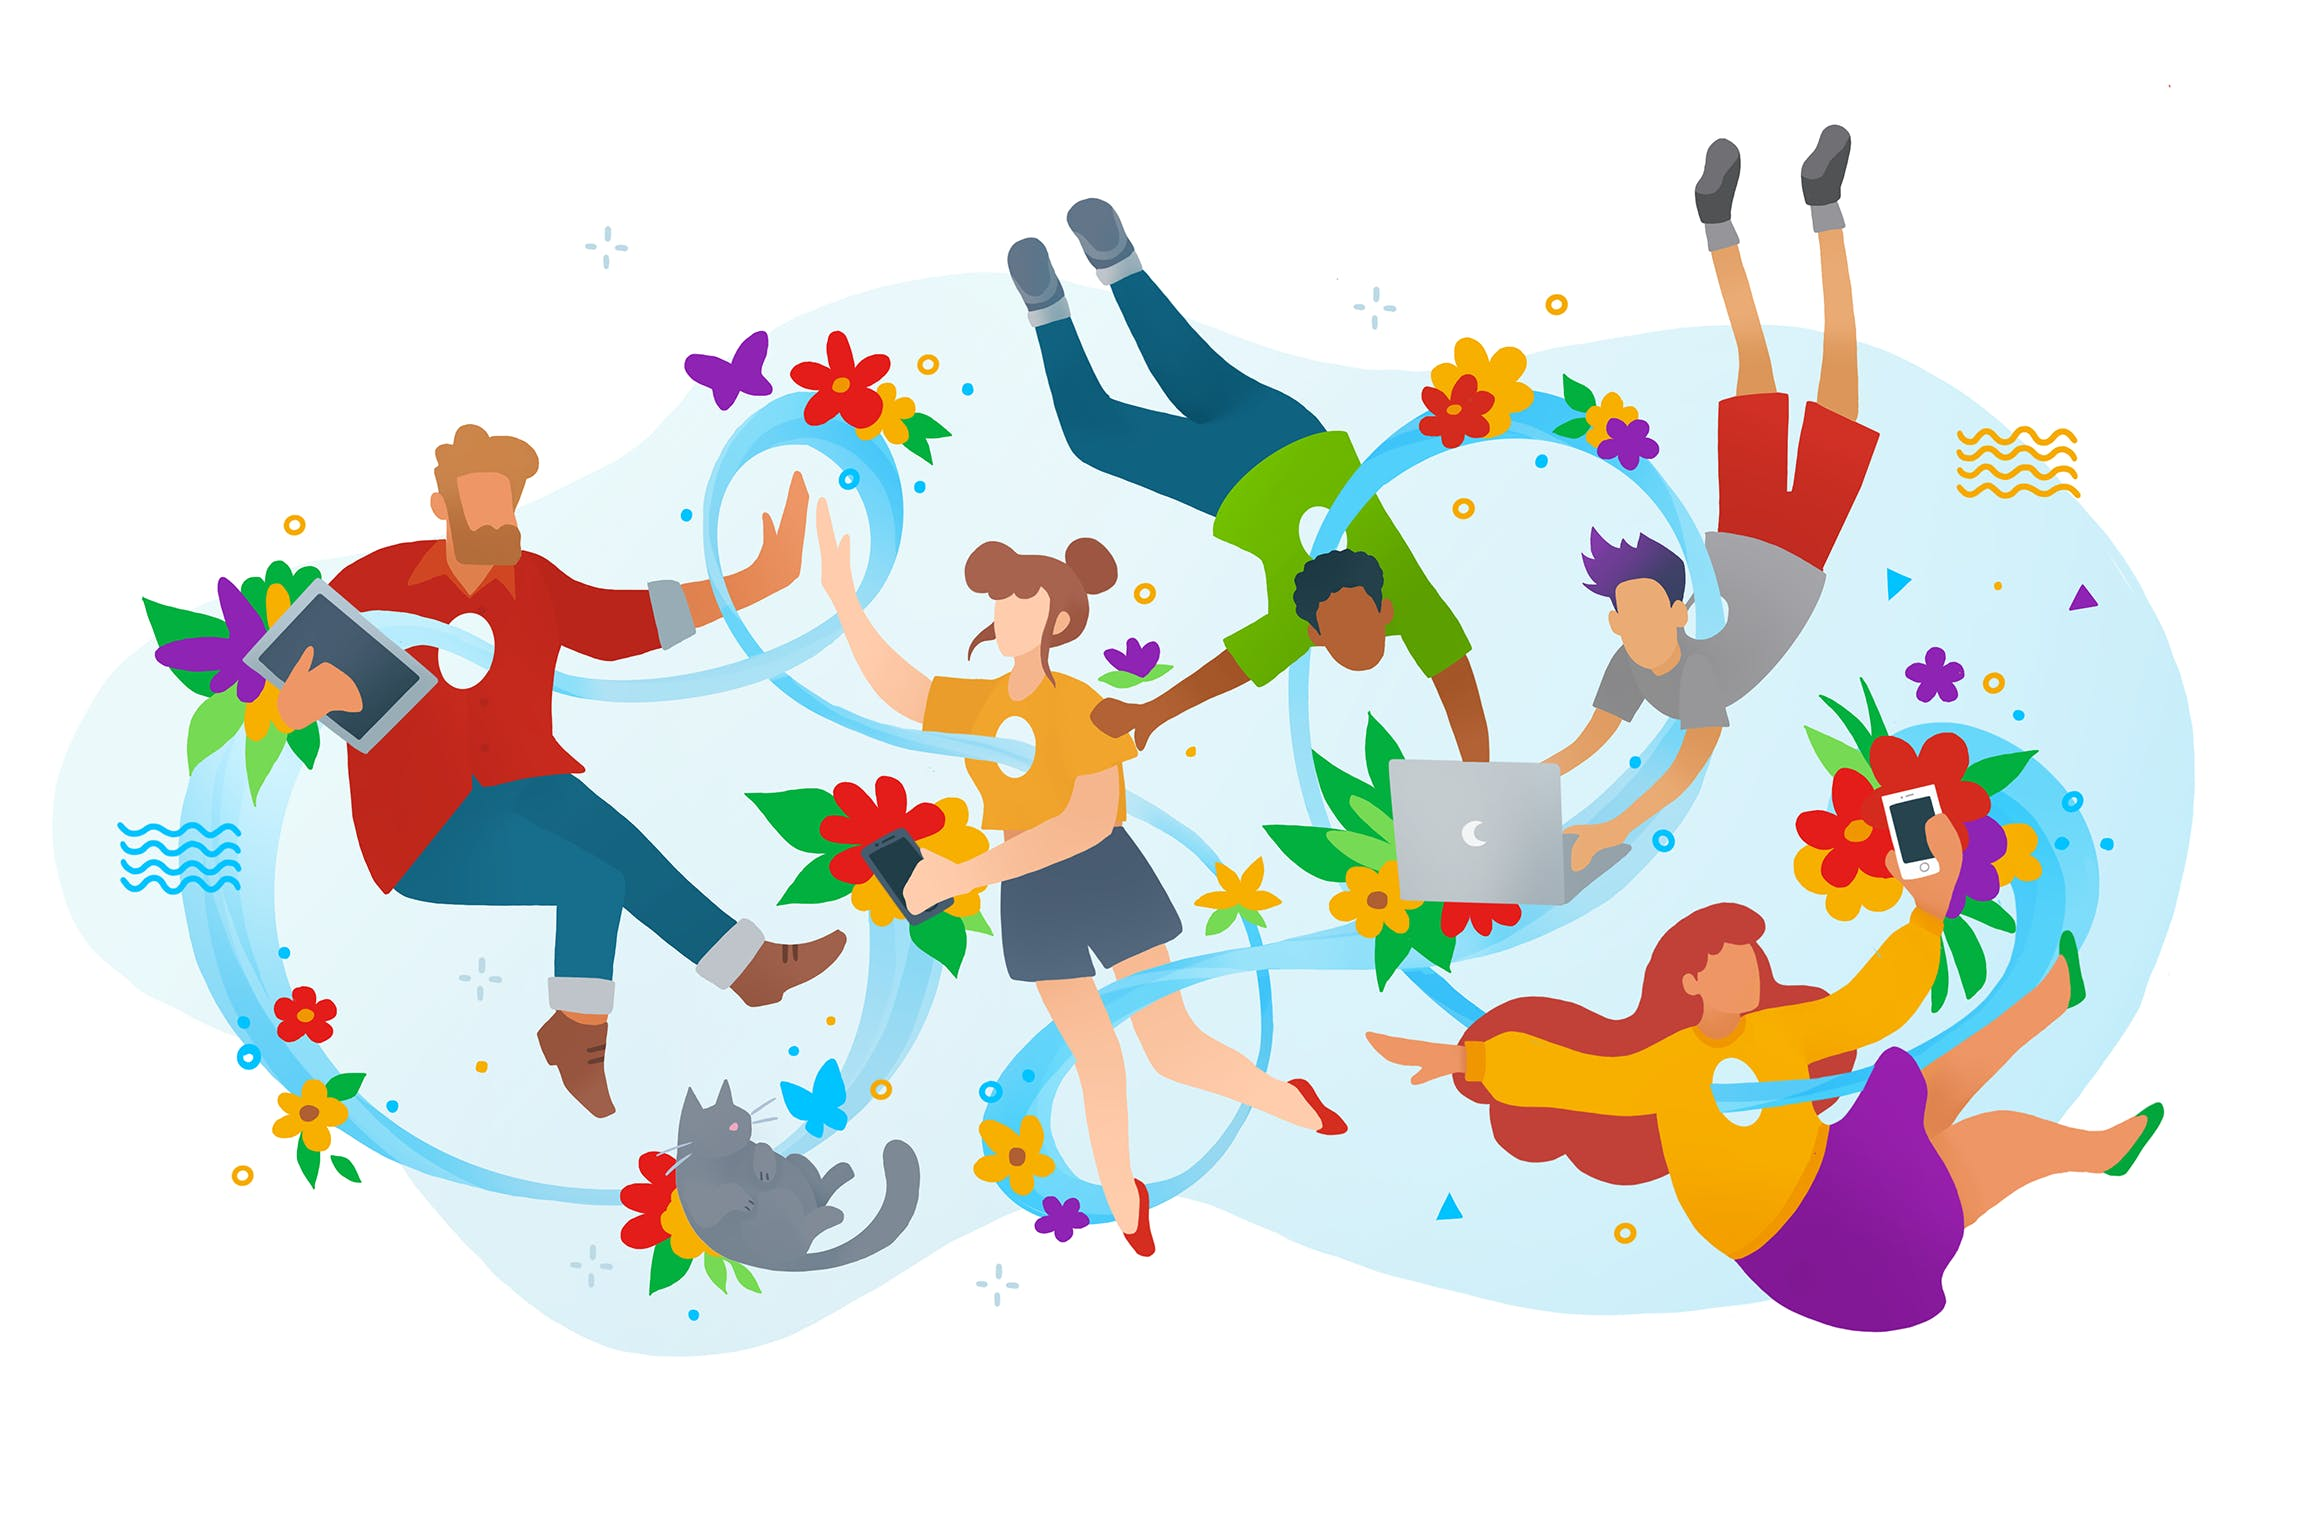 A colourful illustration of people holding different electronic devices surrounded by flowers.